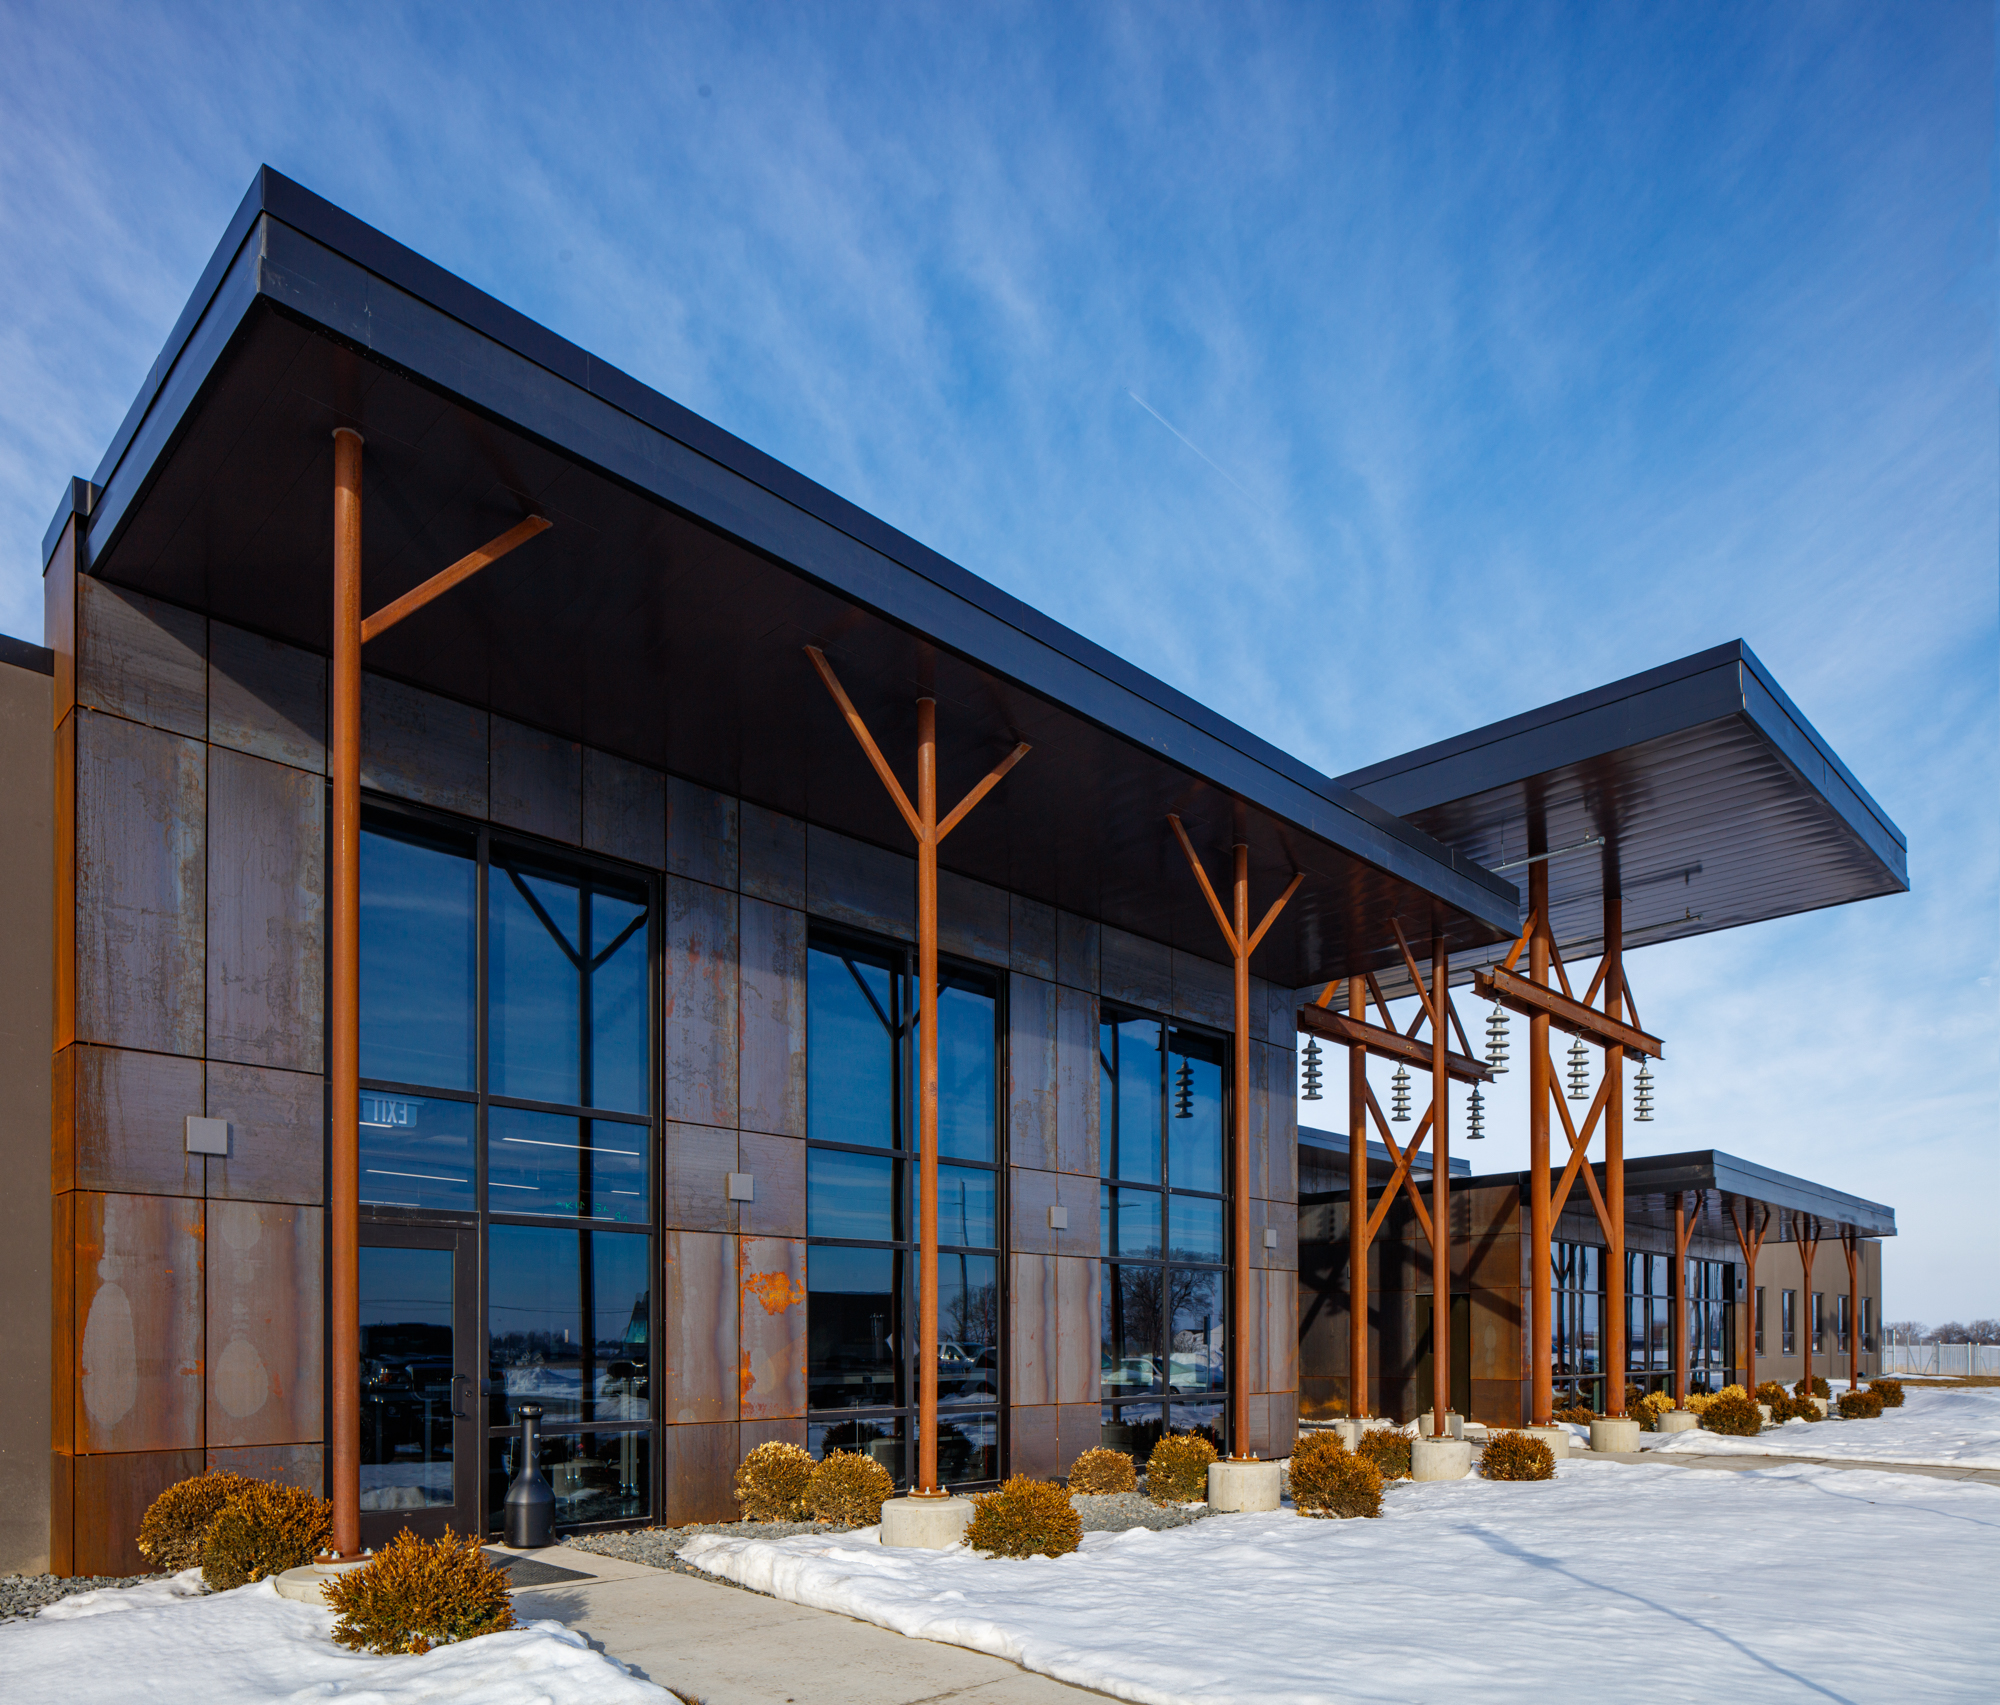 Large windows with medical walls and natural wood poles for the front exterior of the MVJATC building during winter with light snow on the ground